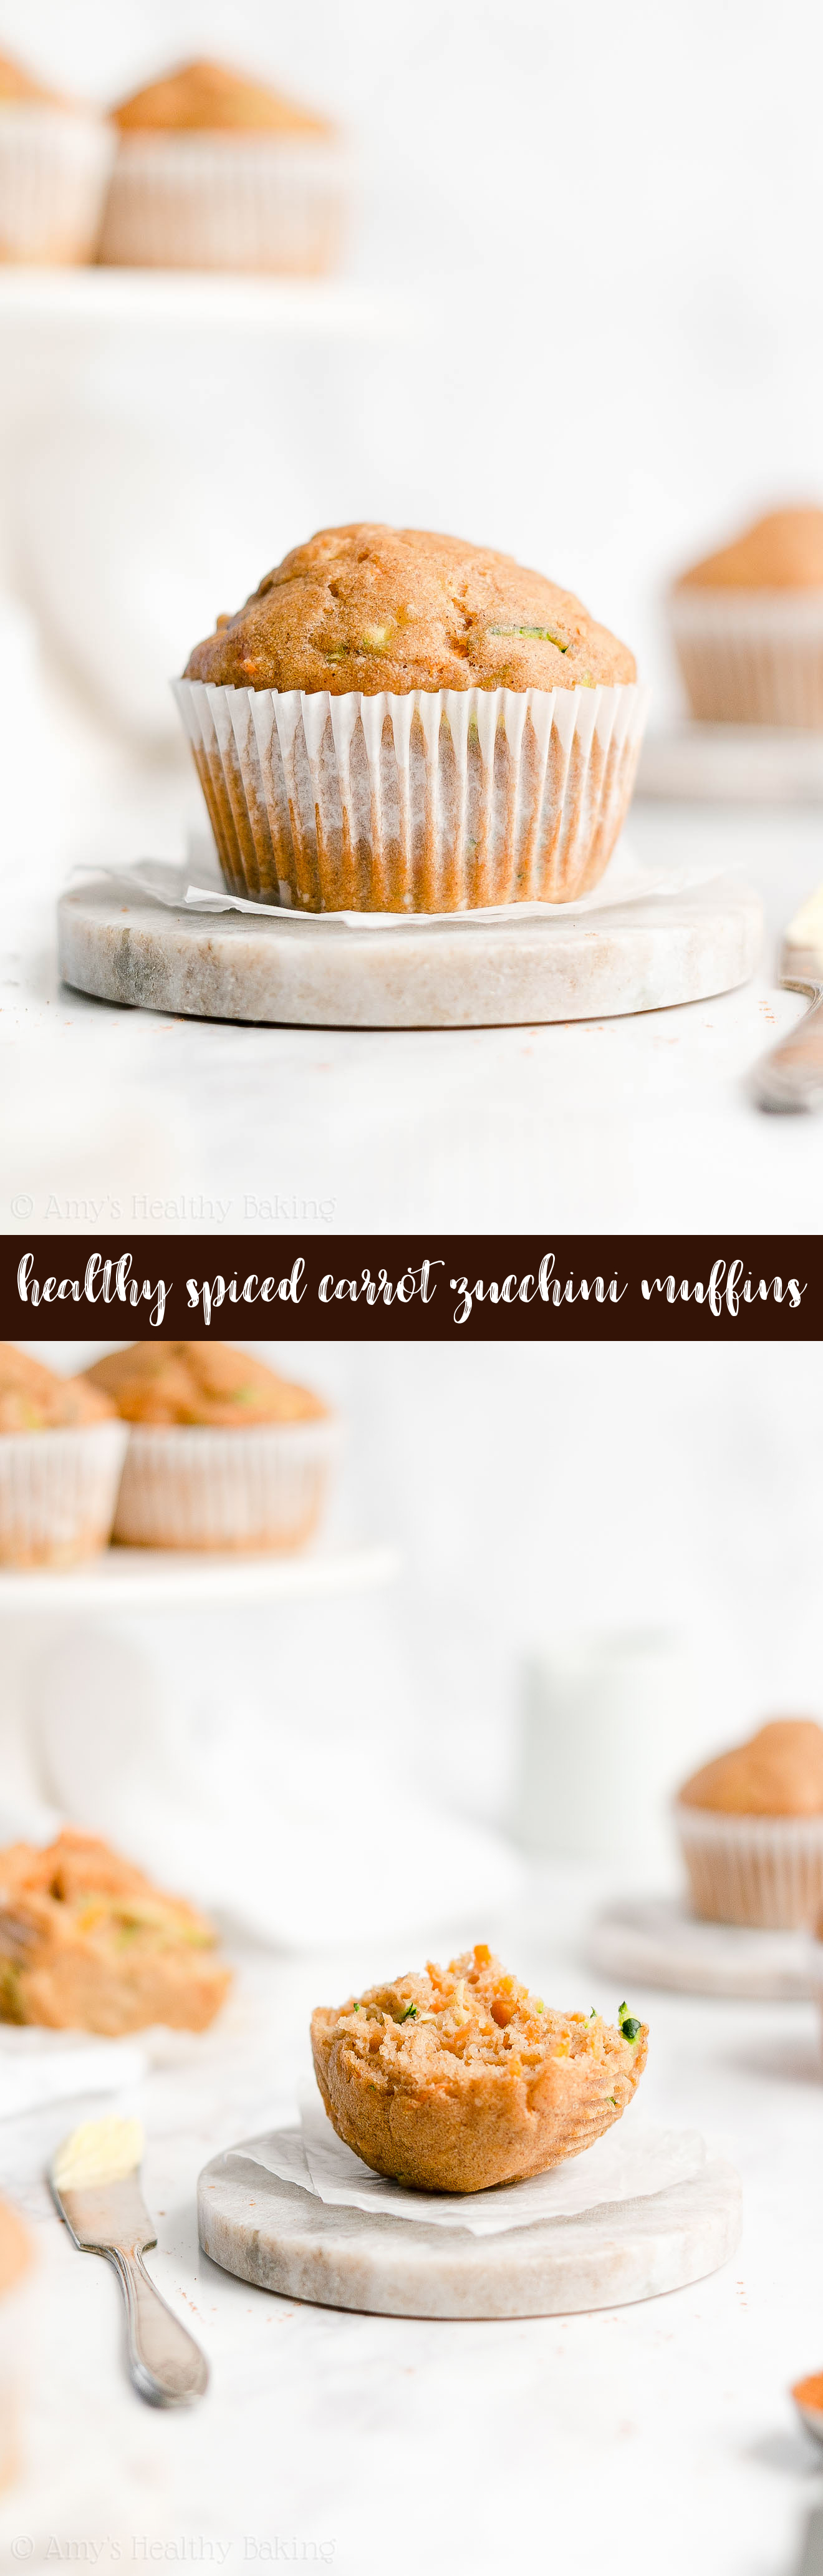 Best Ever Easy Healthy Clean Eating Sugar Free Spiced Carrot Zucchini Muffins